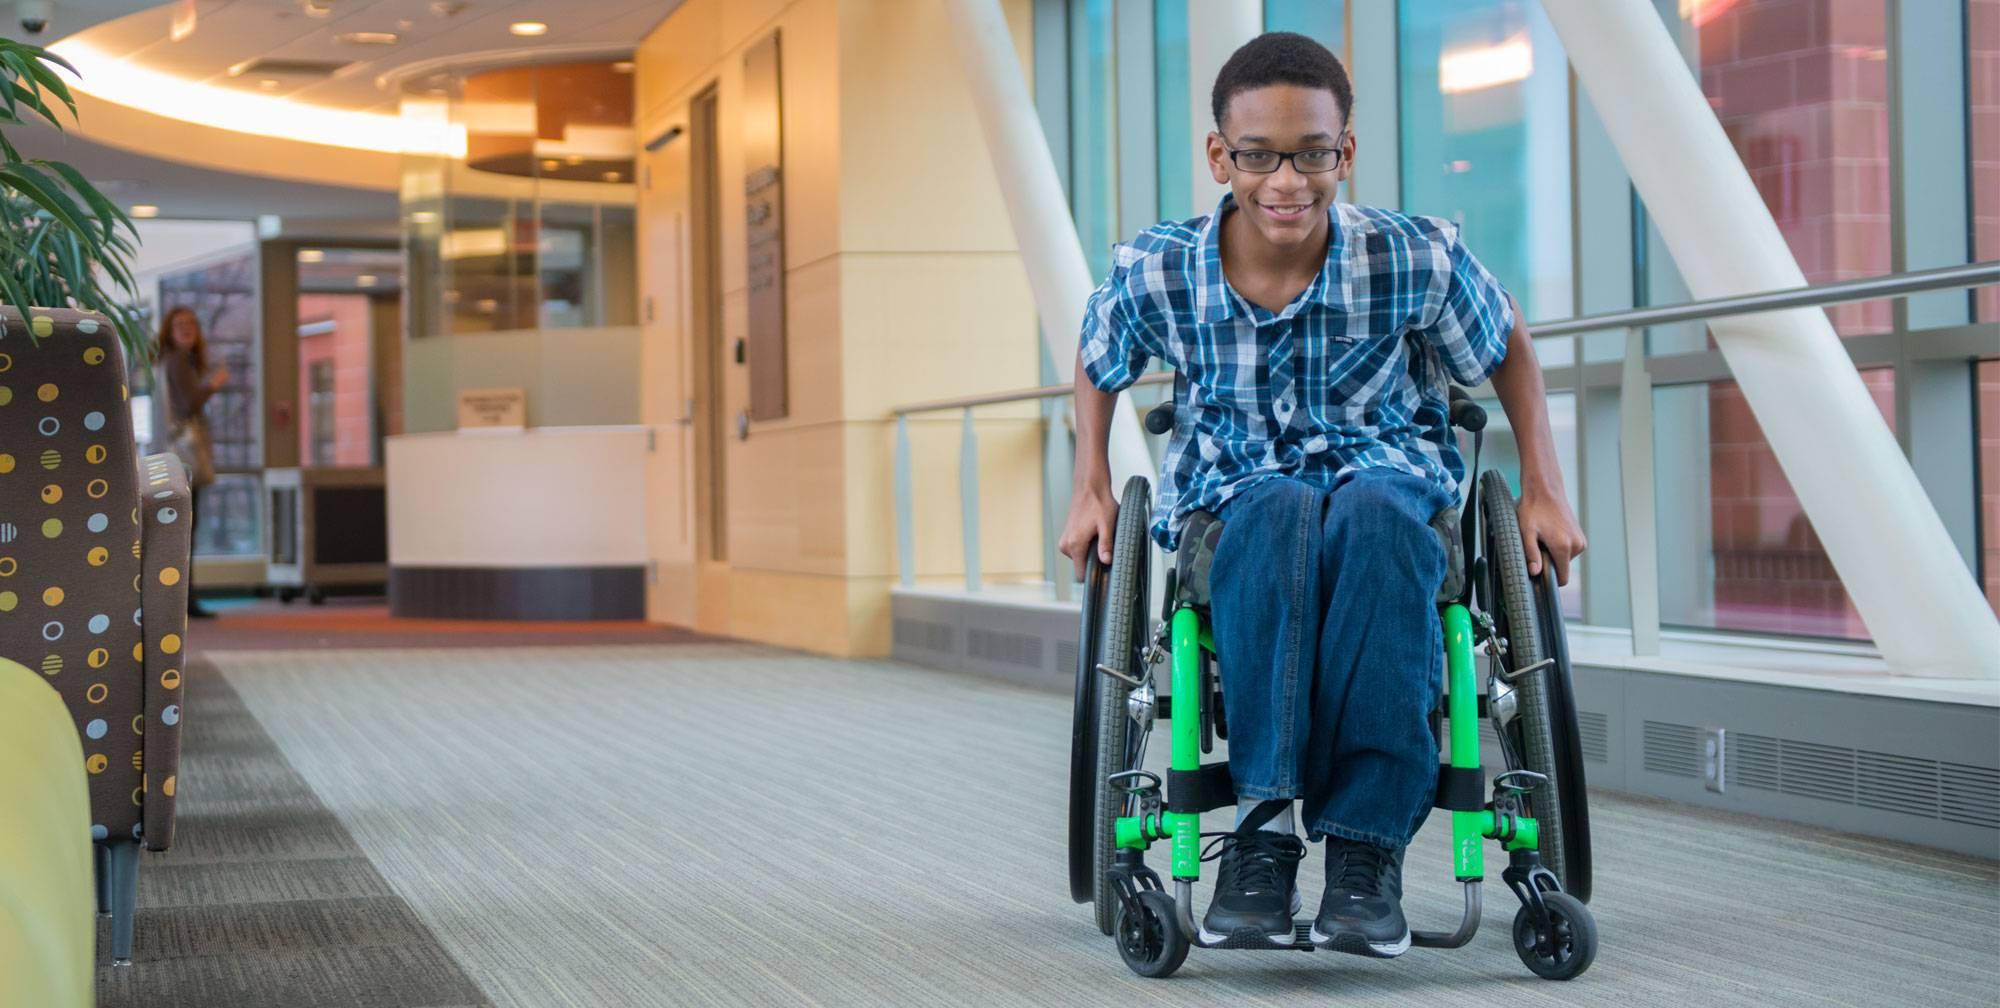 Gillette patient Elijah using wheelchair near rehab therapies in skyway.